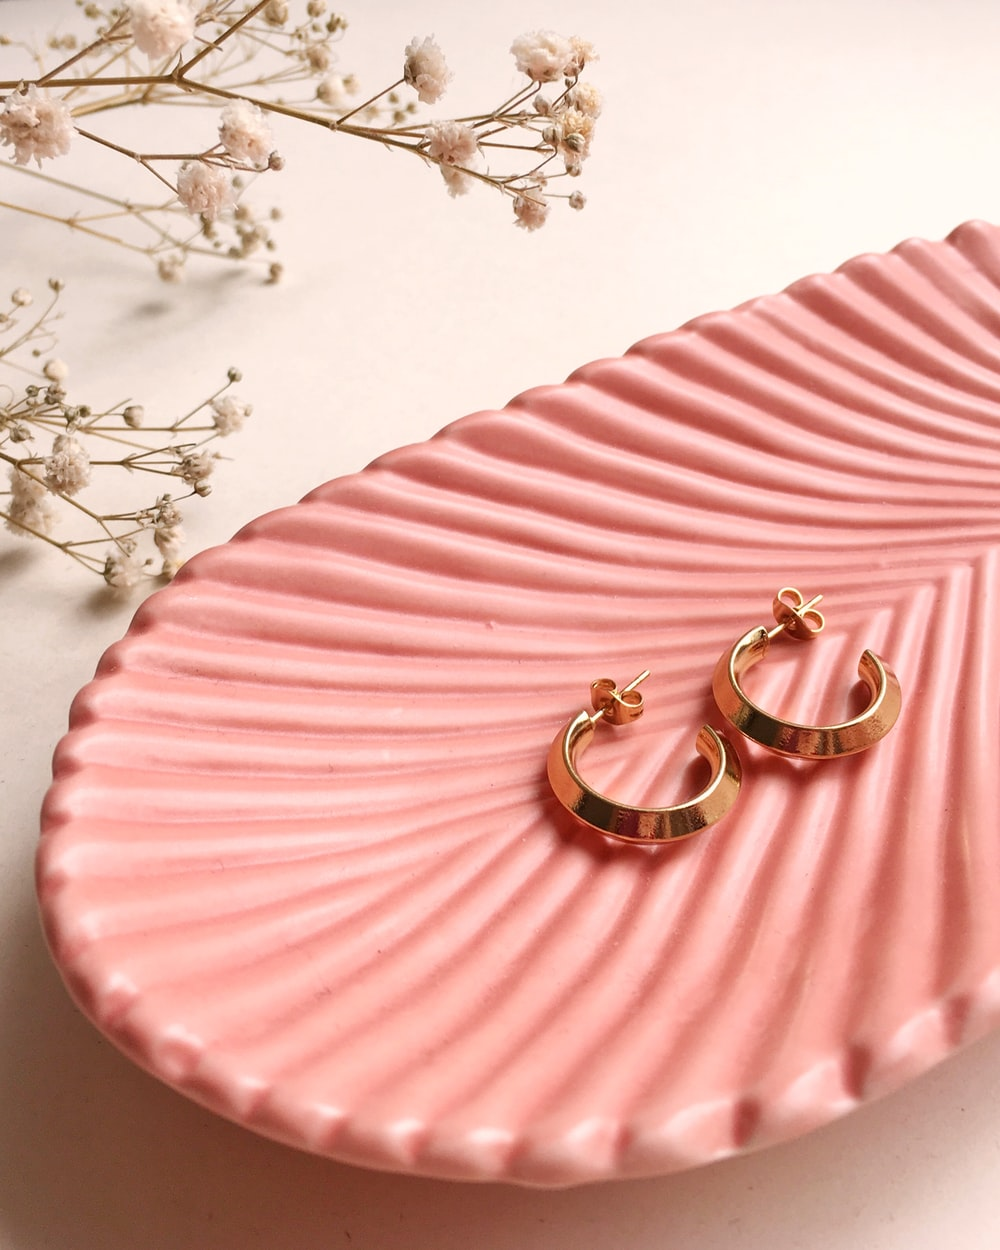 gold and silver rings on pink and white striped textile